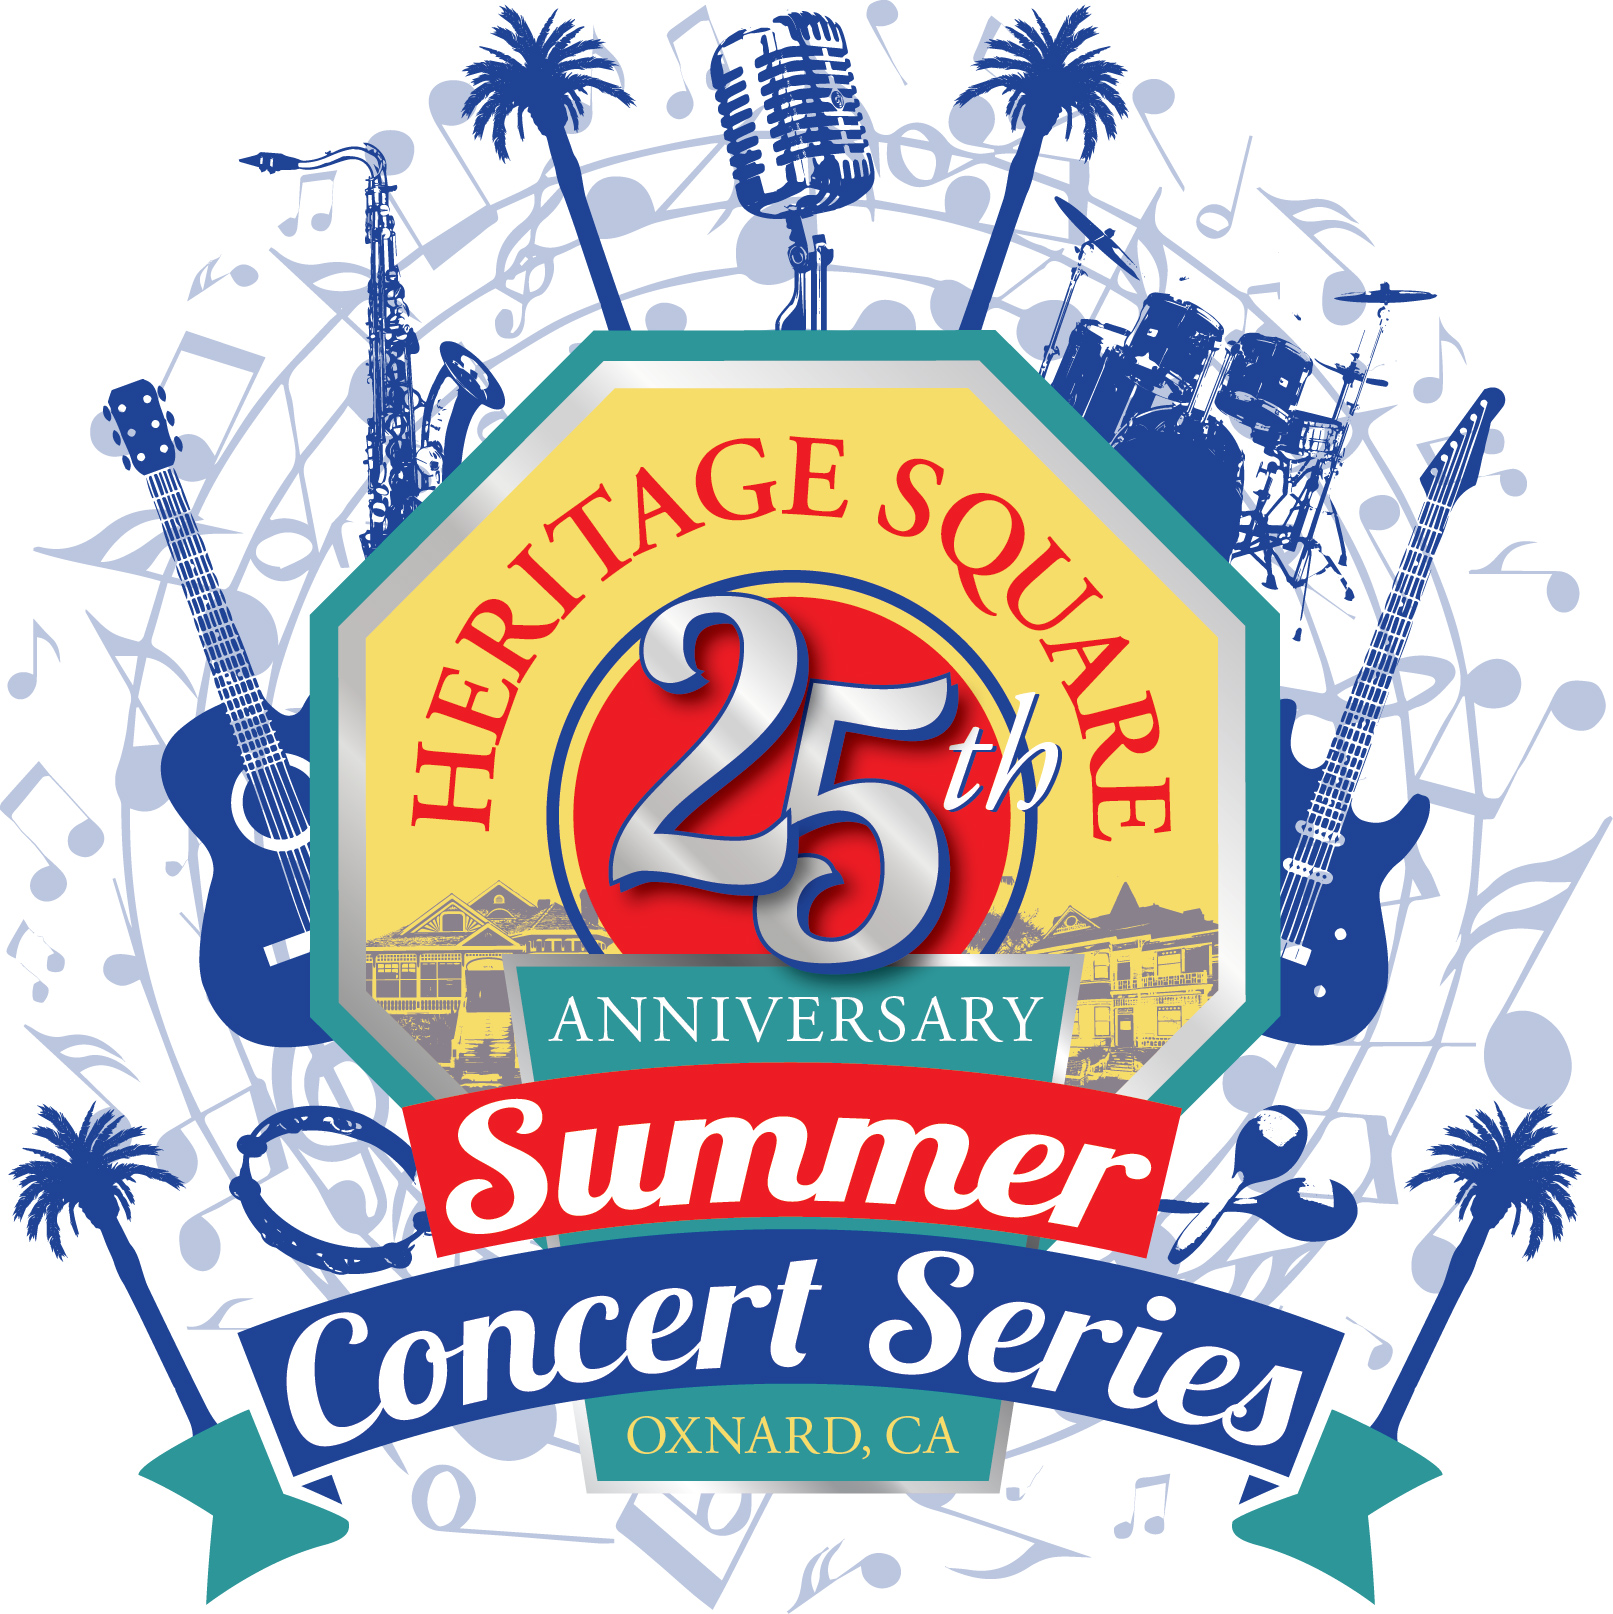 Heritage Square Summer Concert Series – The Blue Breeze Band